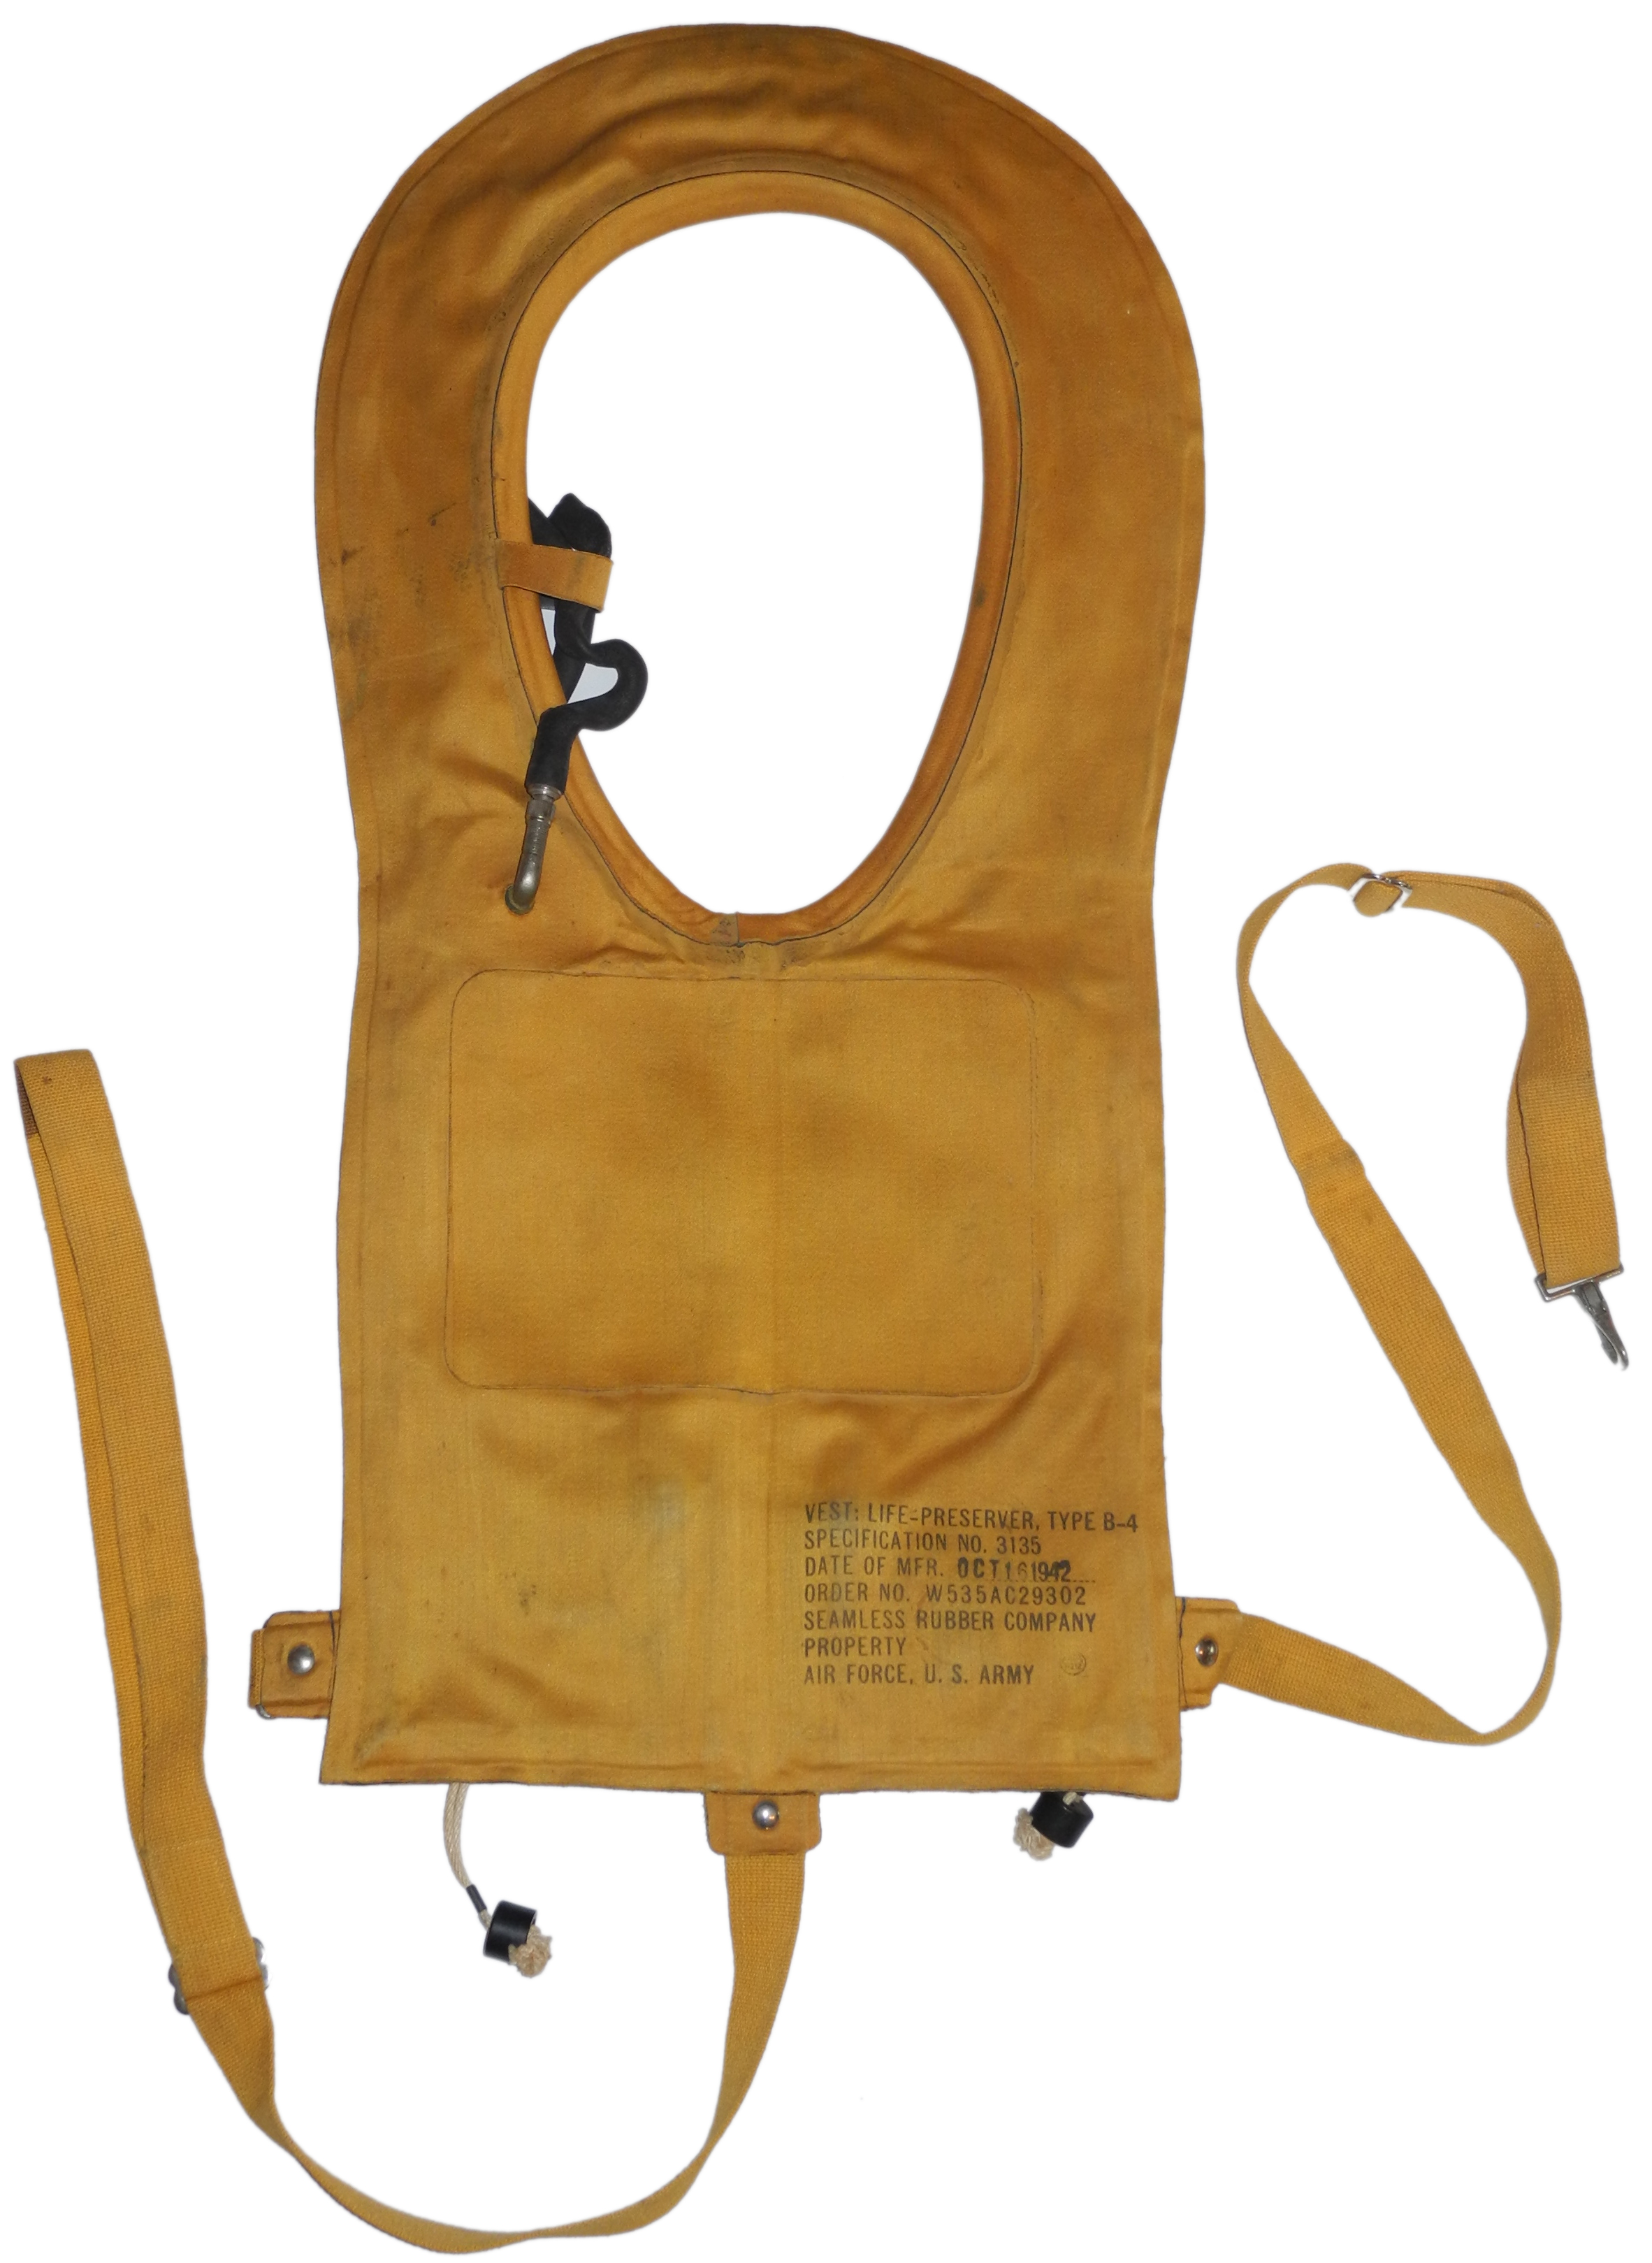 AAF B-4 life vest EARLY production